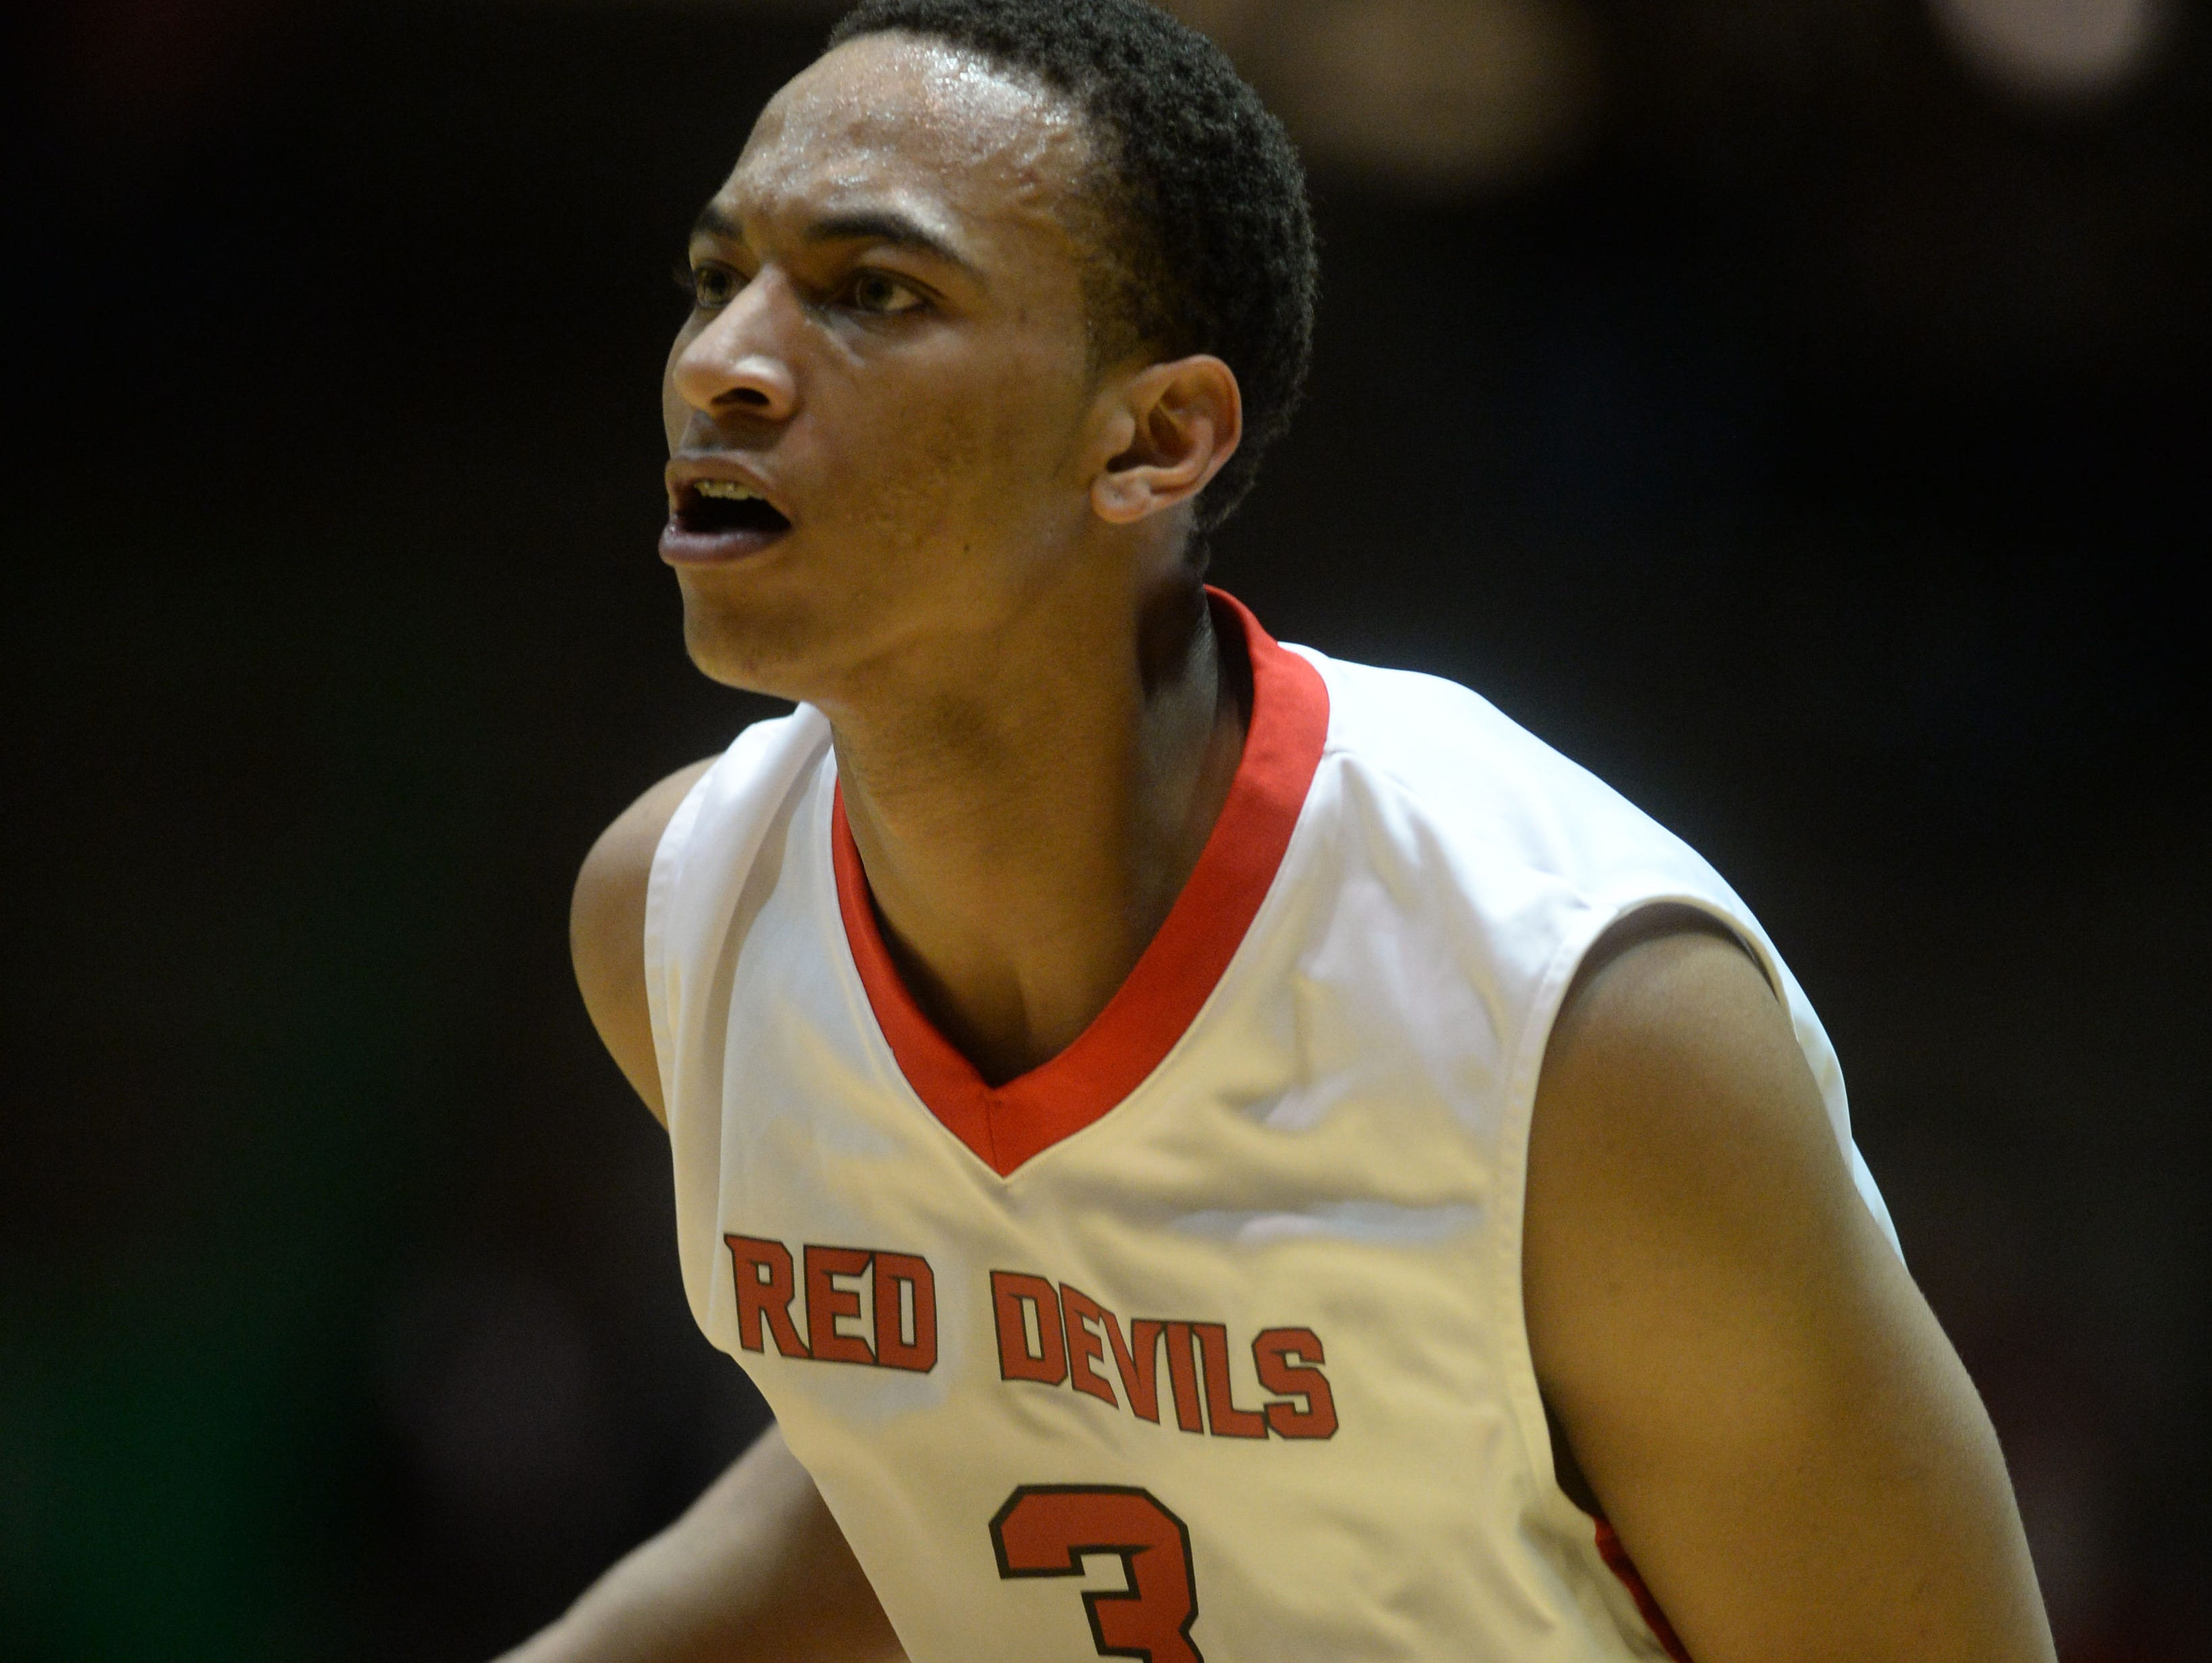 Richmond's Davious Webster will participate in the Top 60 workout on April 12.